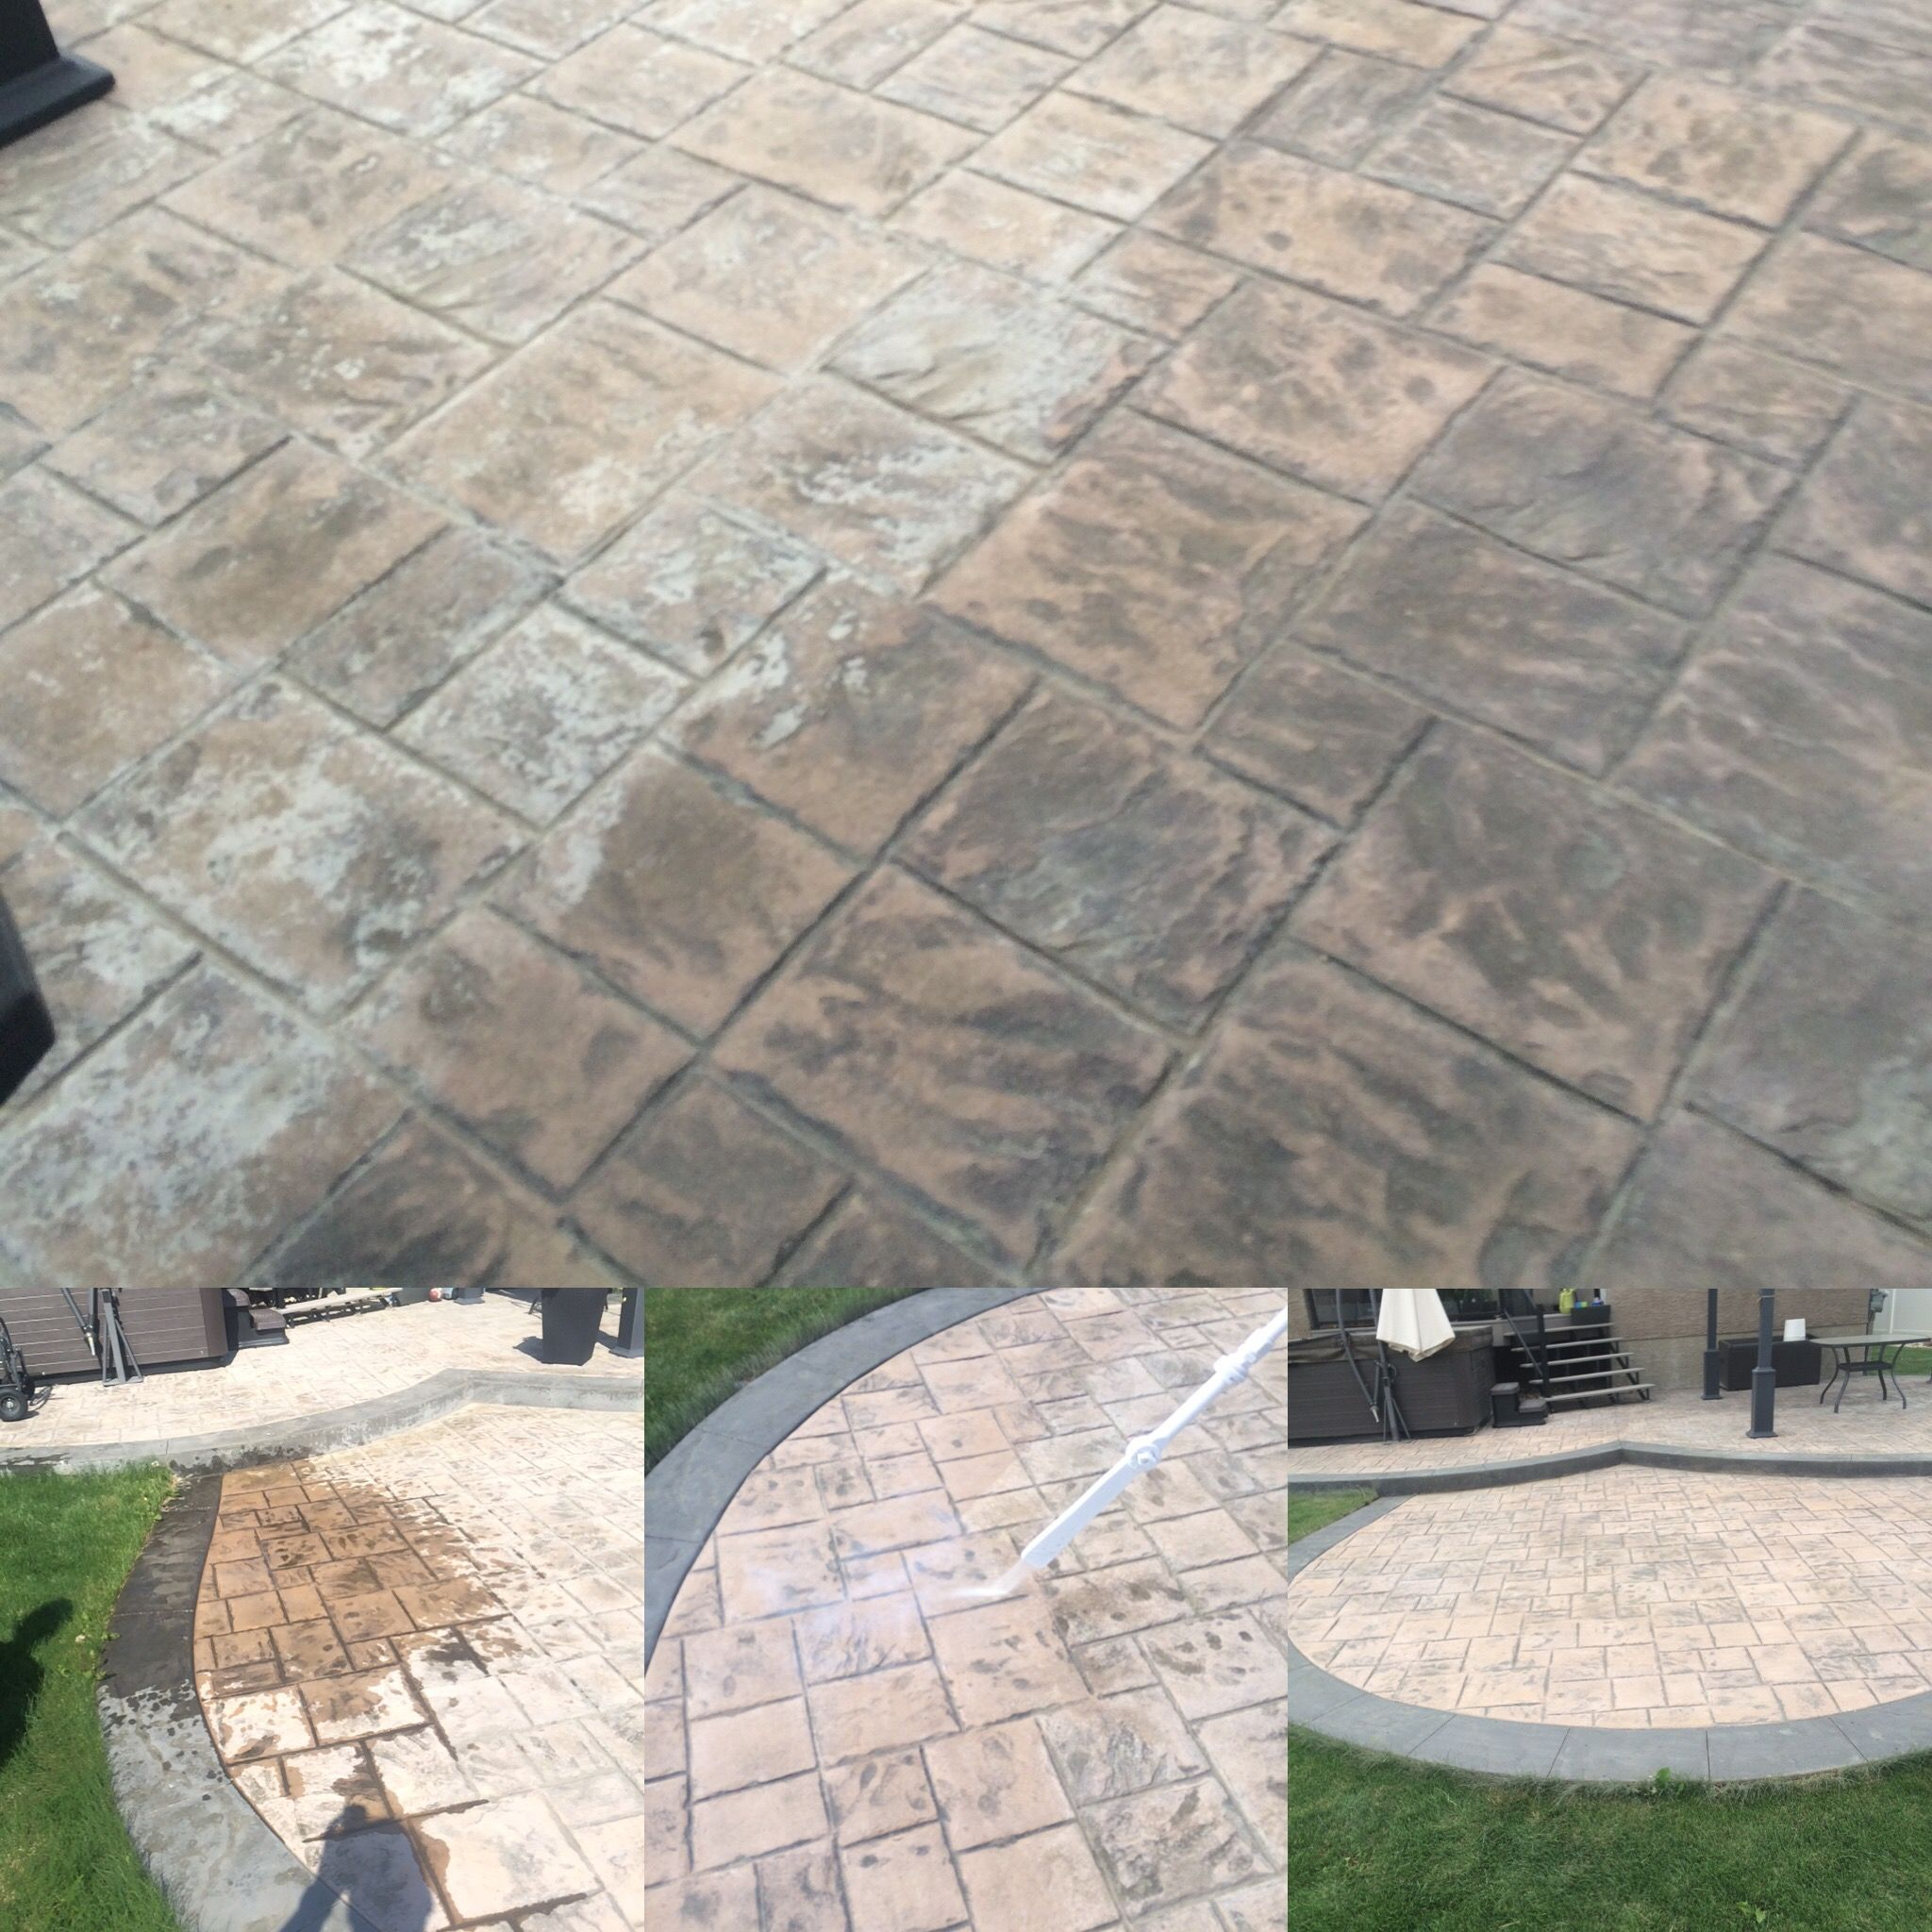 Using Dry Ice Blasting To Remove Concrete Sealer From A Stamped Patio